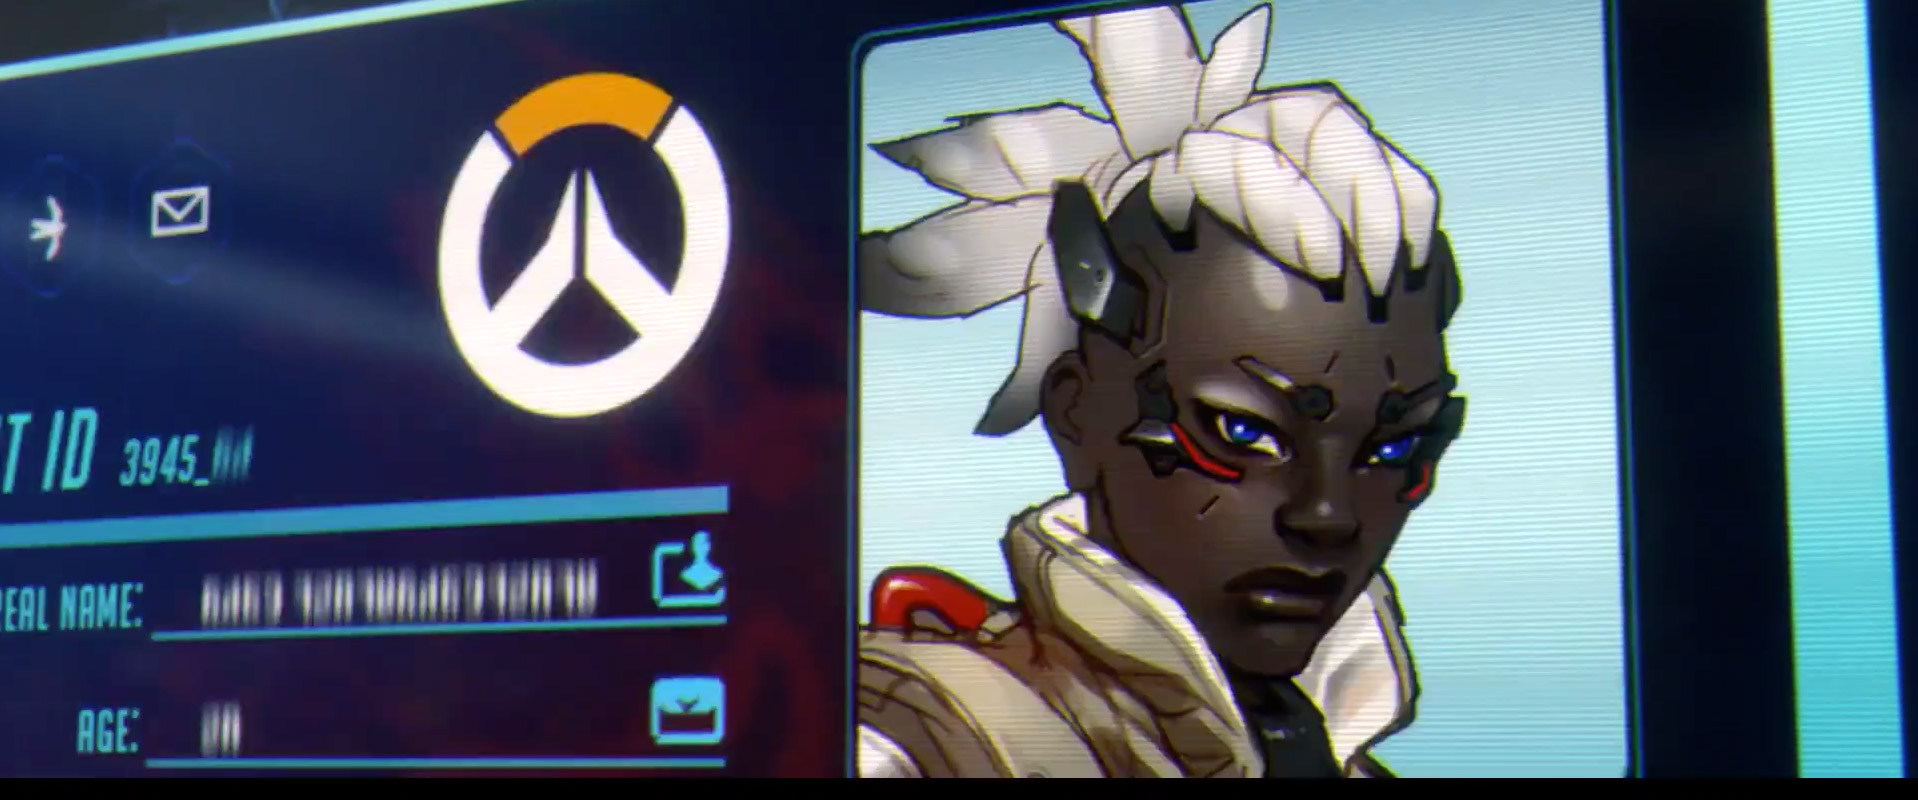 Blizzards New Overwatch Short Might Be Teasing A Few New